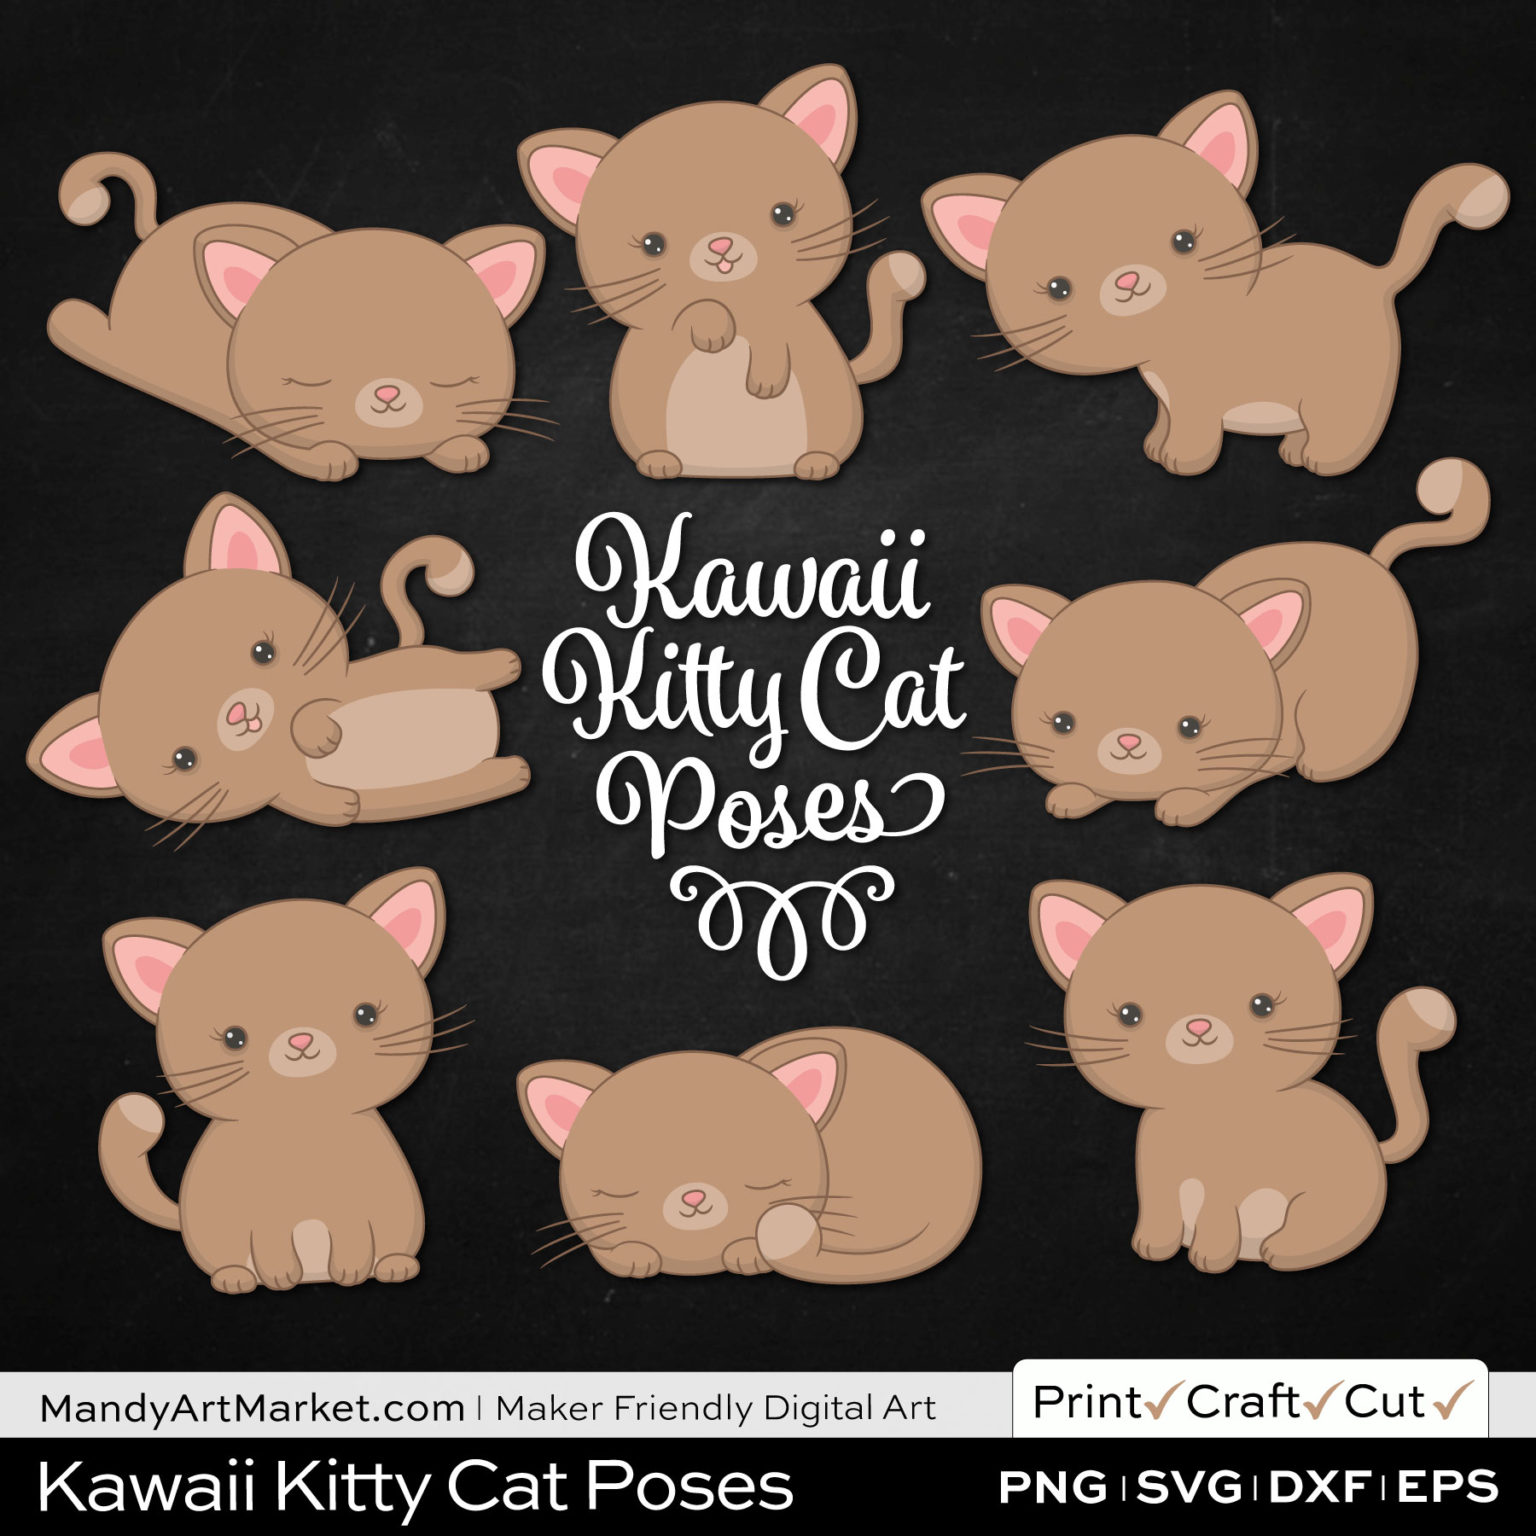 Sand Brown Kawaii Kitty Cat Poses Clipart on Black Background